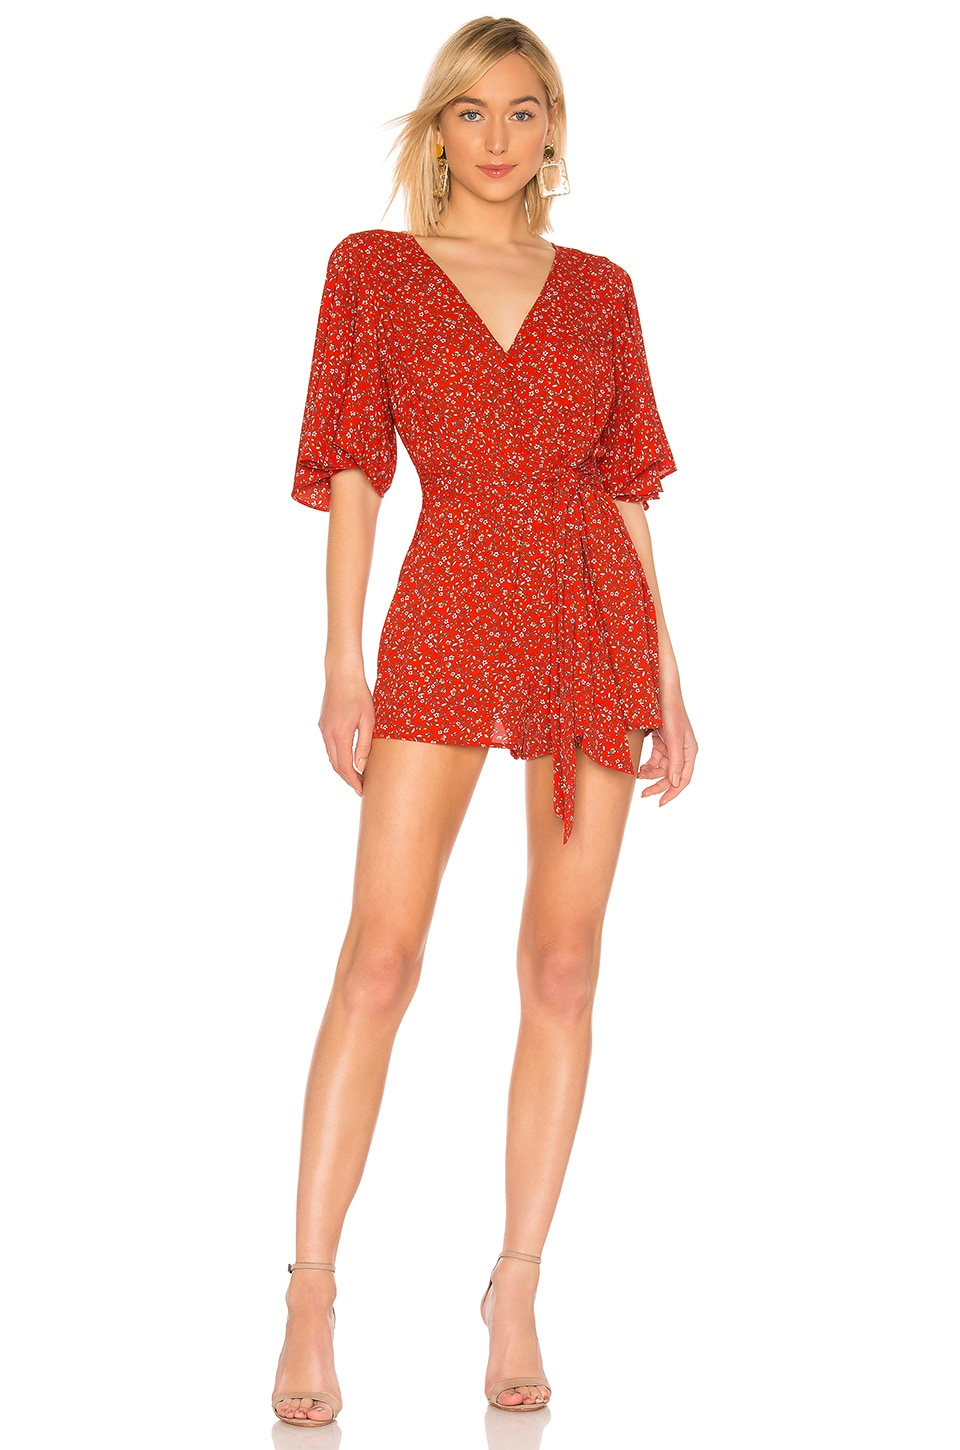 BB Dakota JACK by BB Dakota Spring Breaker Romper in Poppy Red